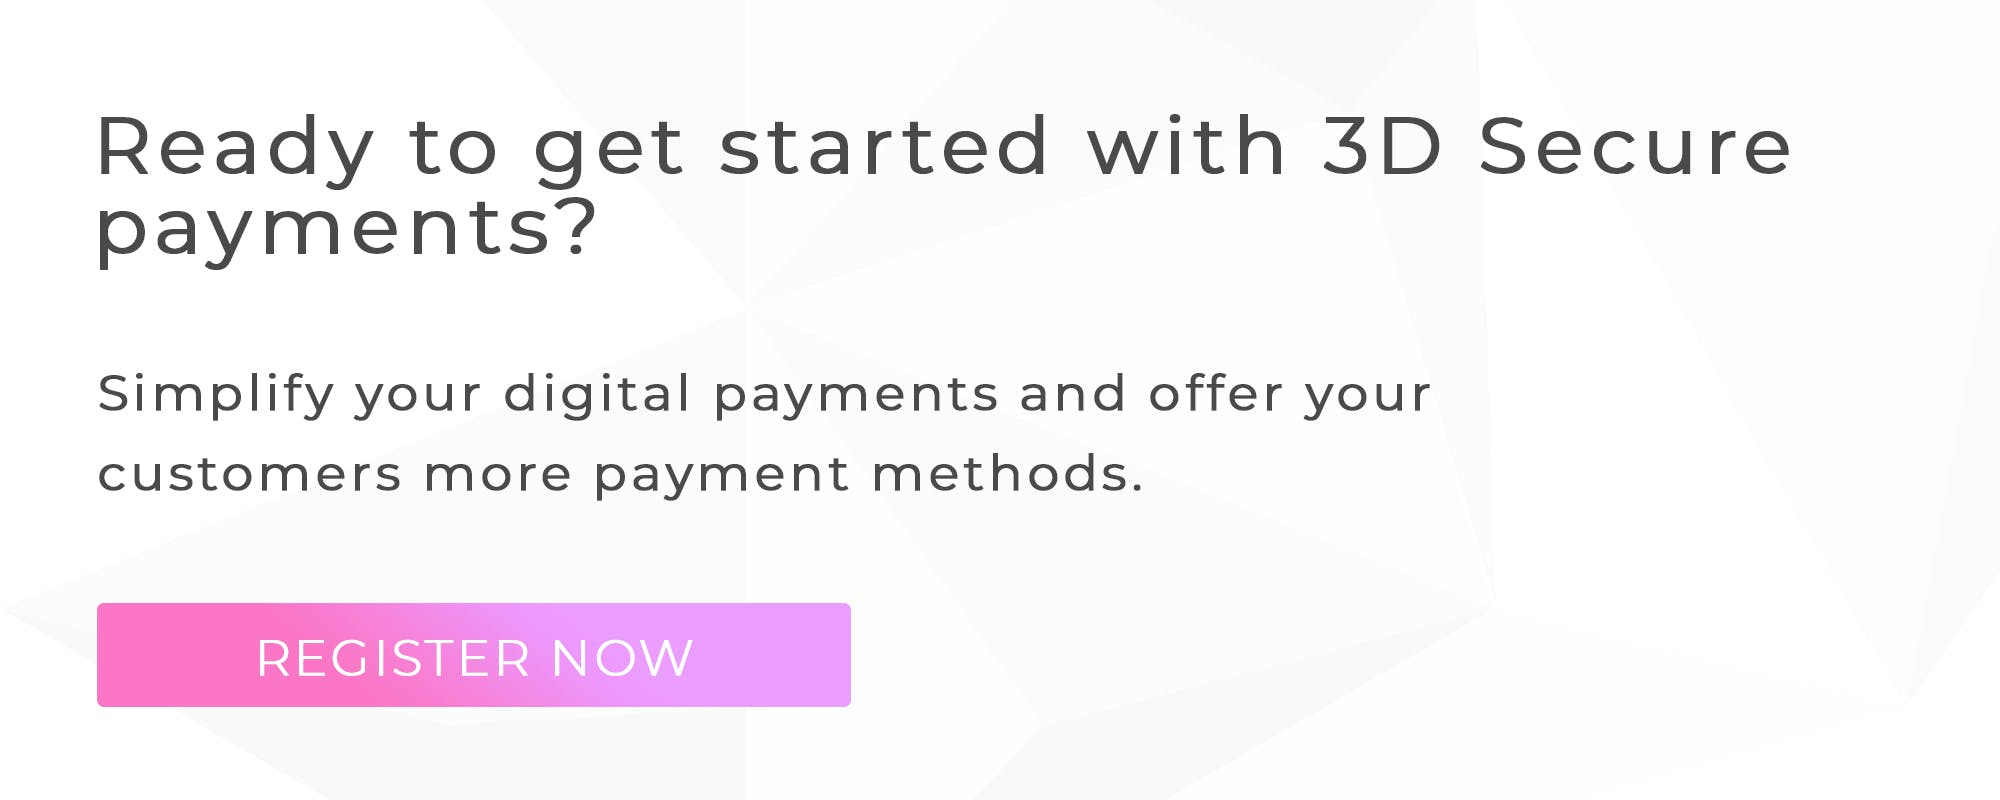 Get started with 3D Secure payments